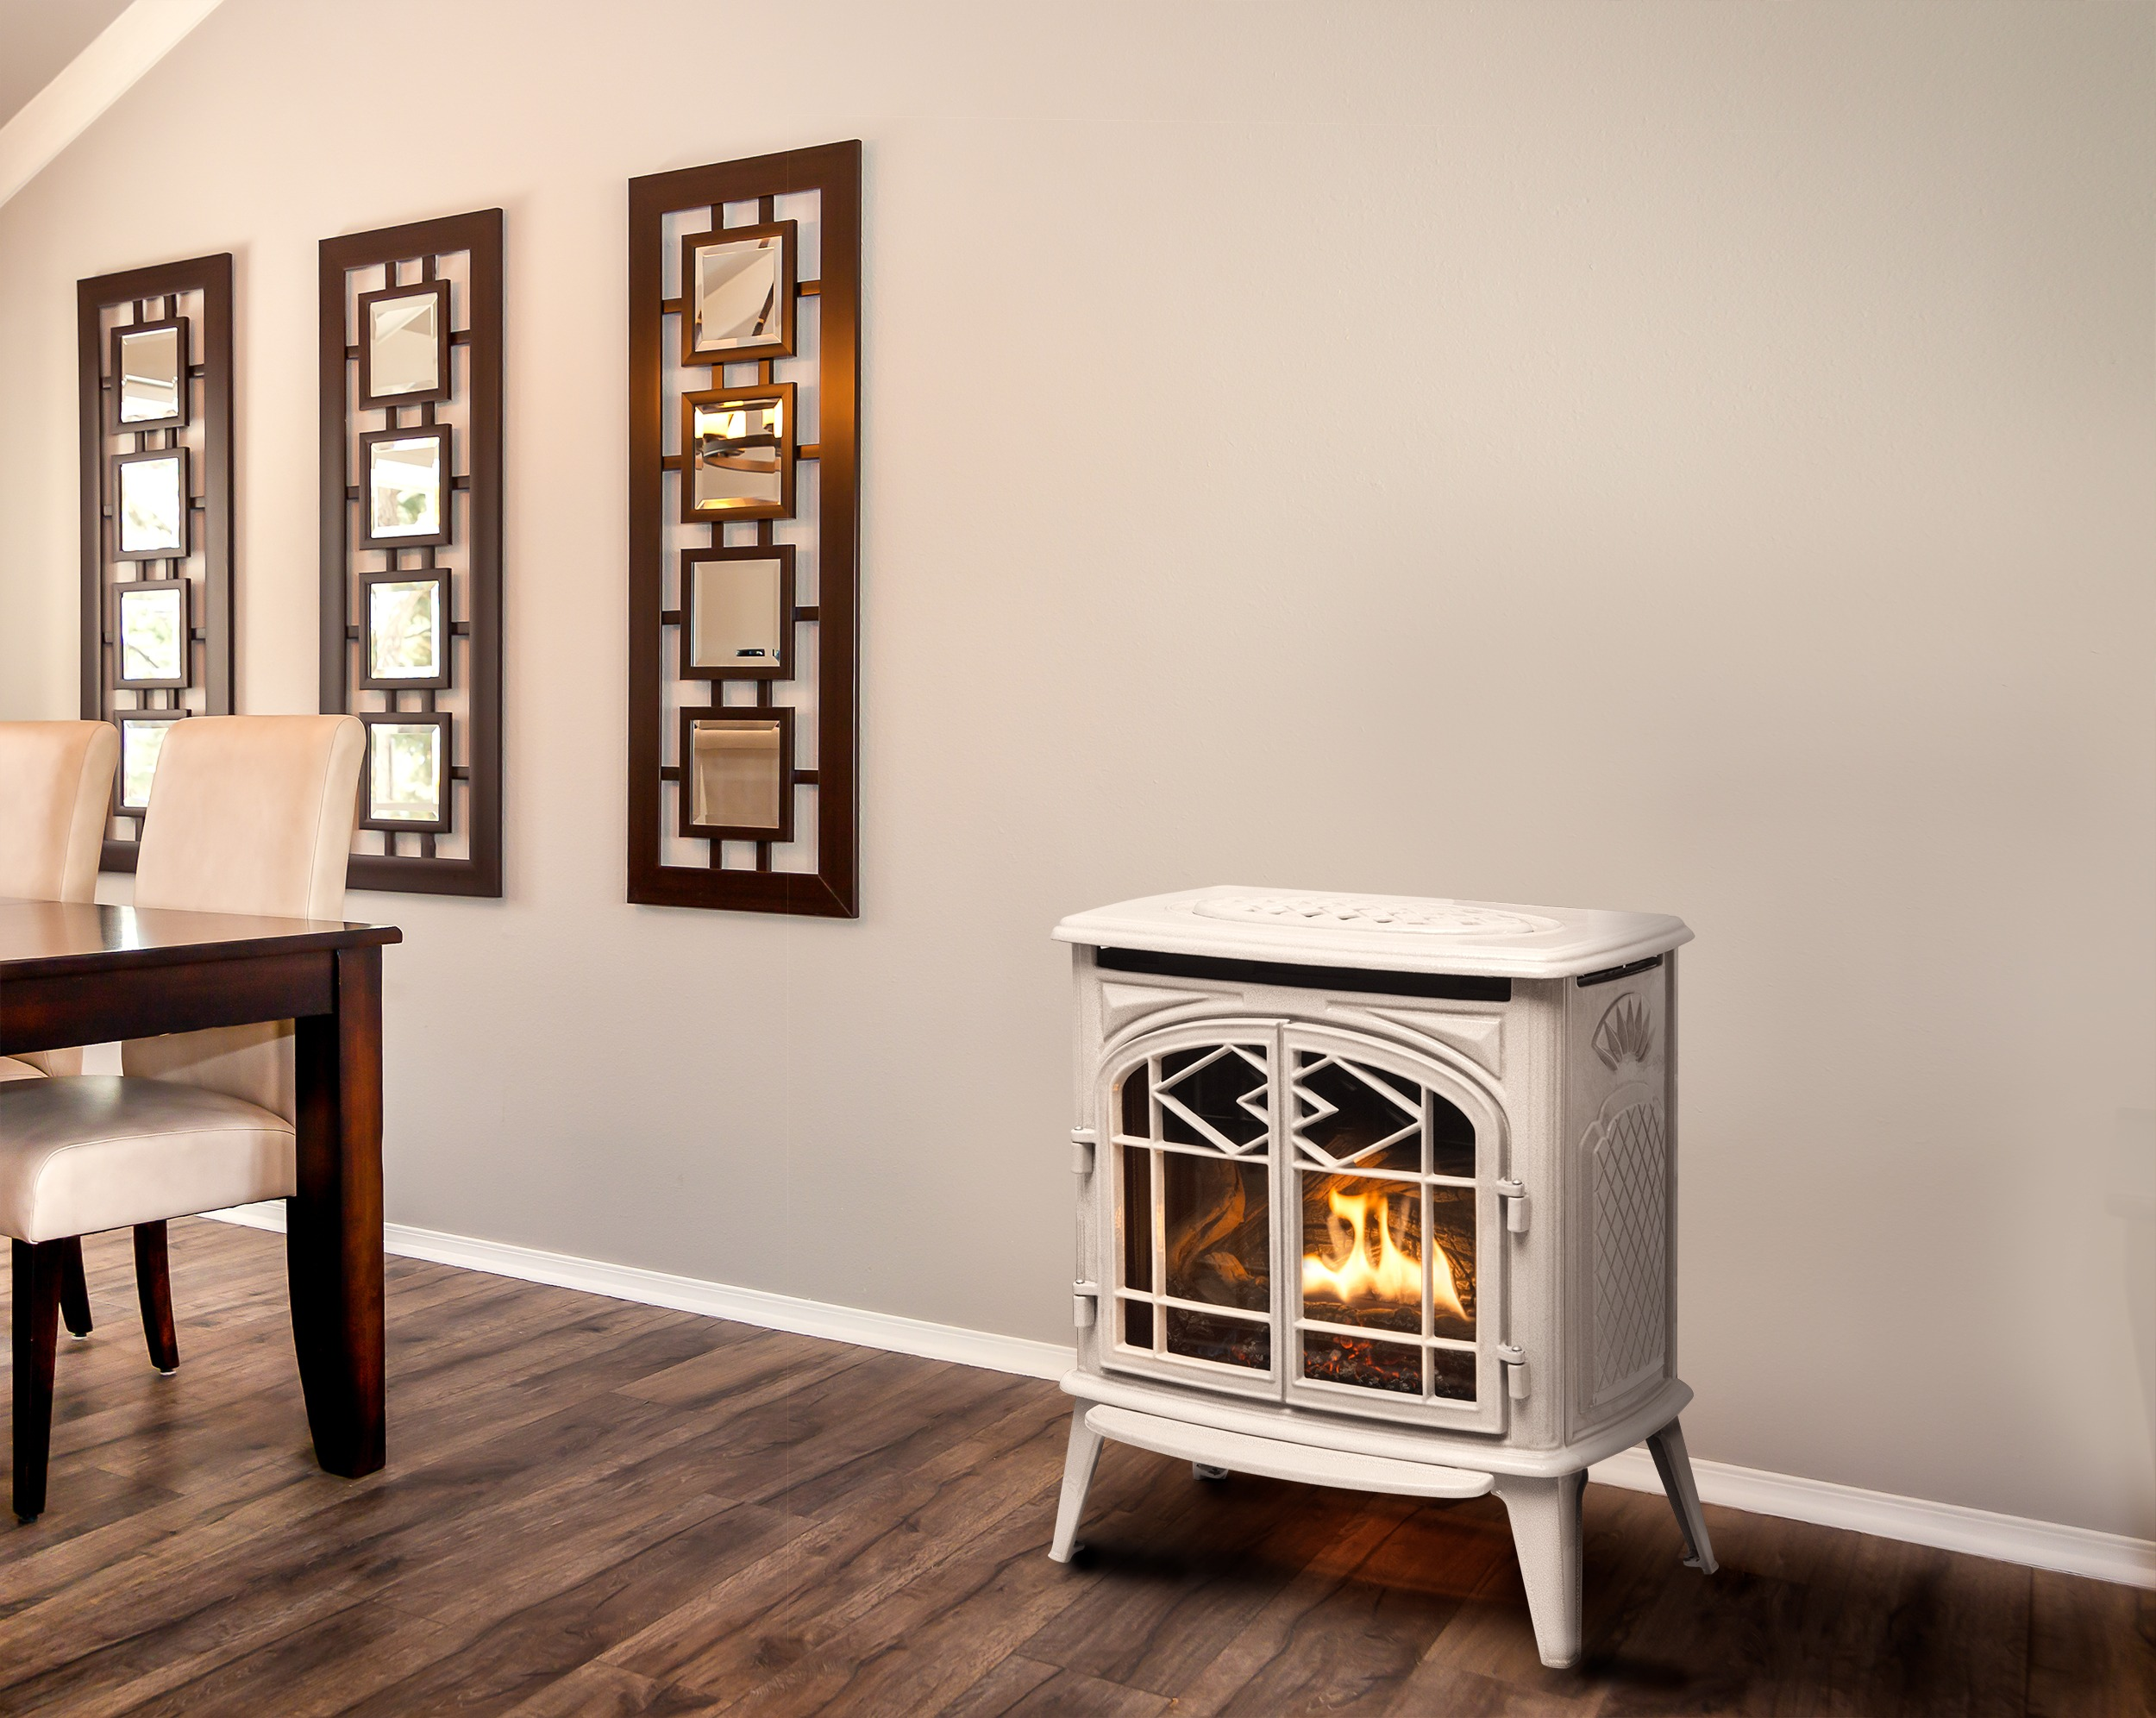 Trenton Classic Gas Stove in Antique White porcelain cladding in living room setting